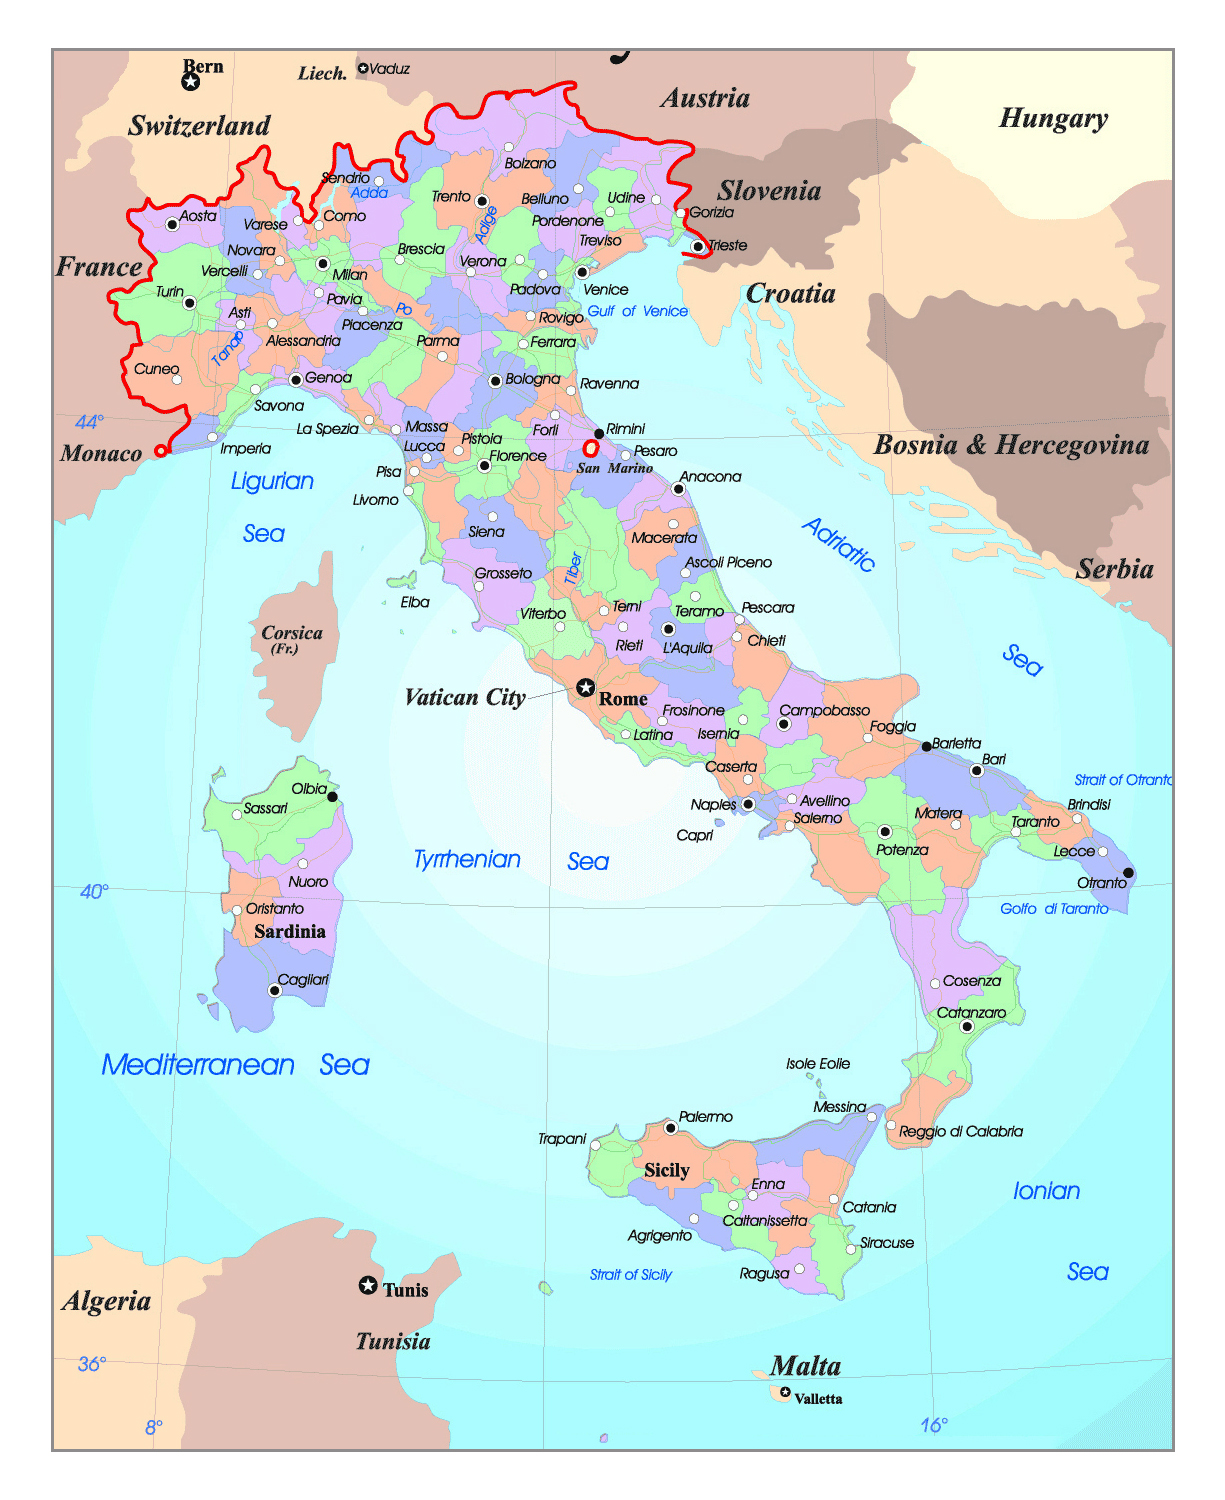 Map Of Italy With Major Cities Detailed political and administrative map of Italy with major